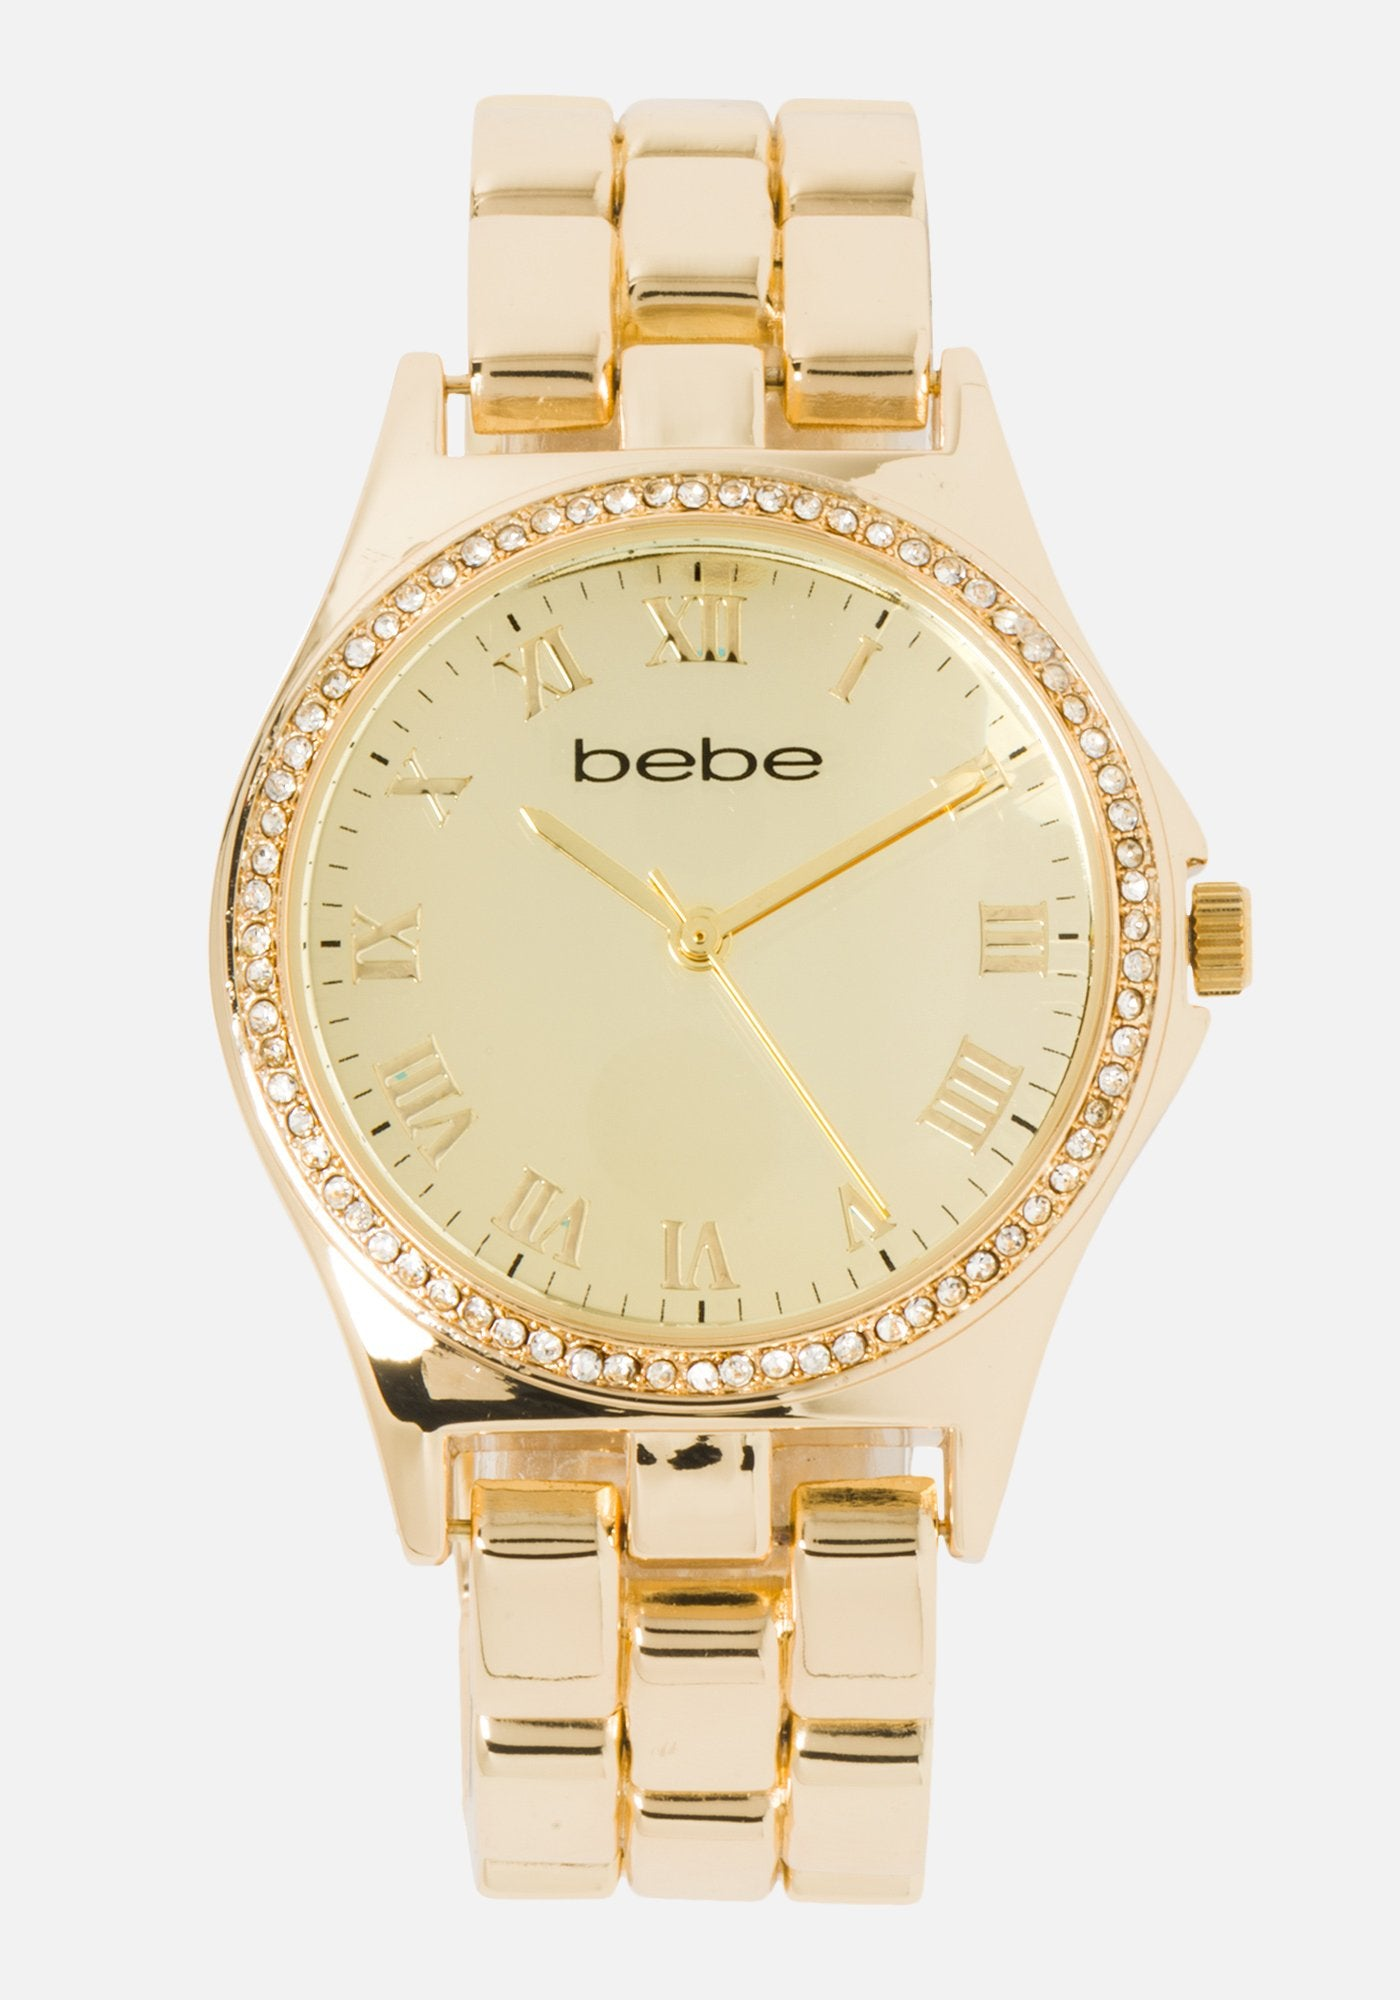 Women's Bebe Embossed Crystal Watch in BLACK GOLD Metal